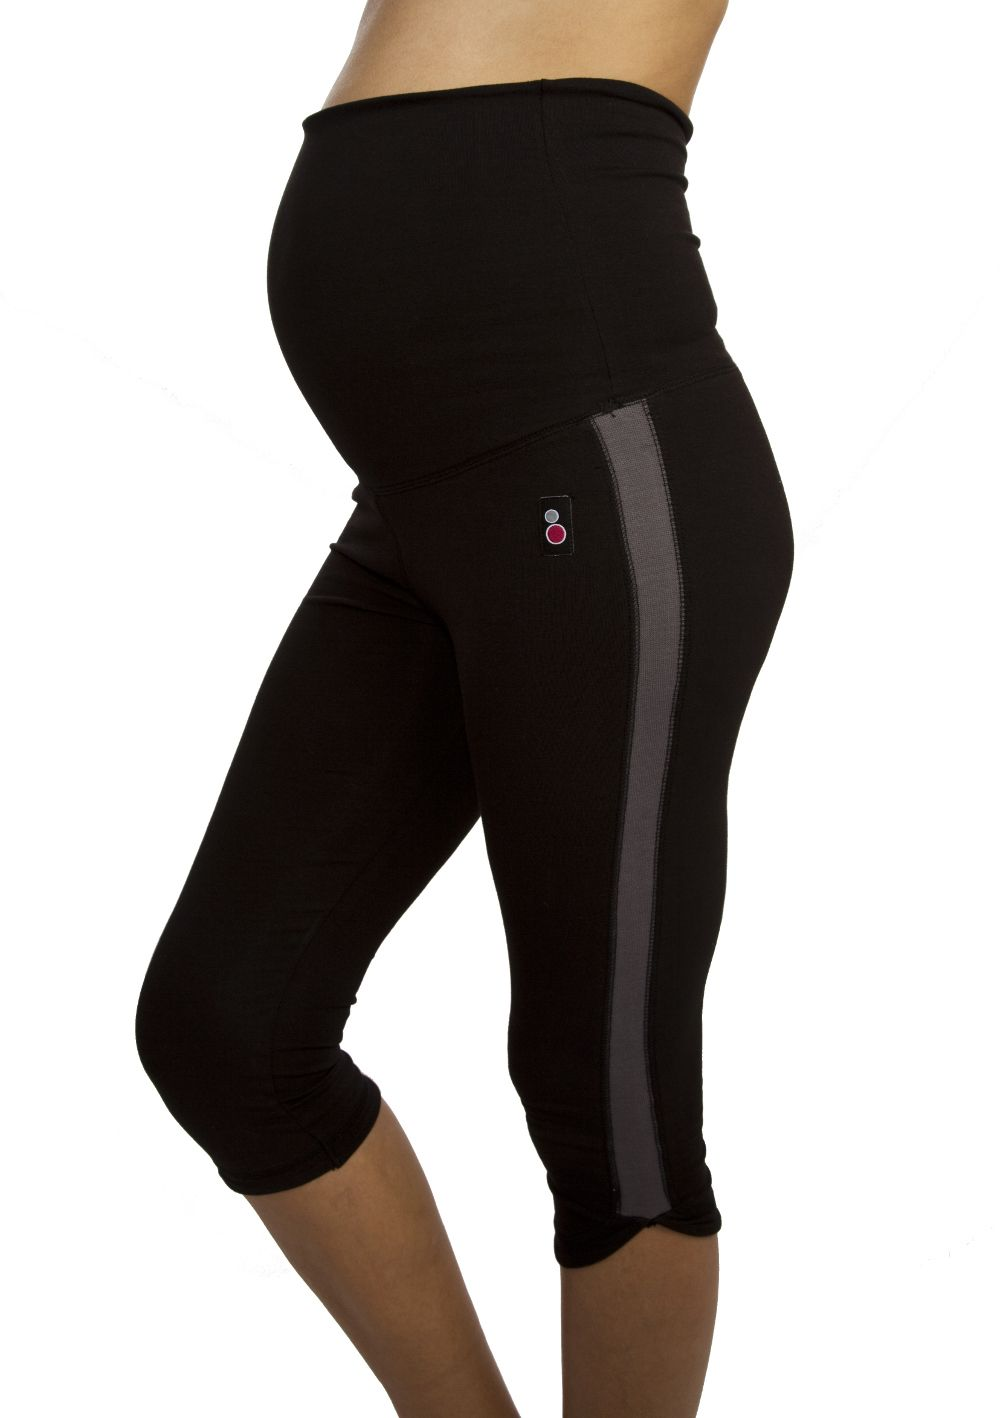 e2db6866120af Maternity Fitness Capri Flattering three-quarter length maternity exercise  leggings with roll-up roll-under support waistband. Check out our  supportive ...